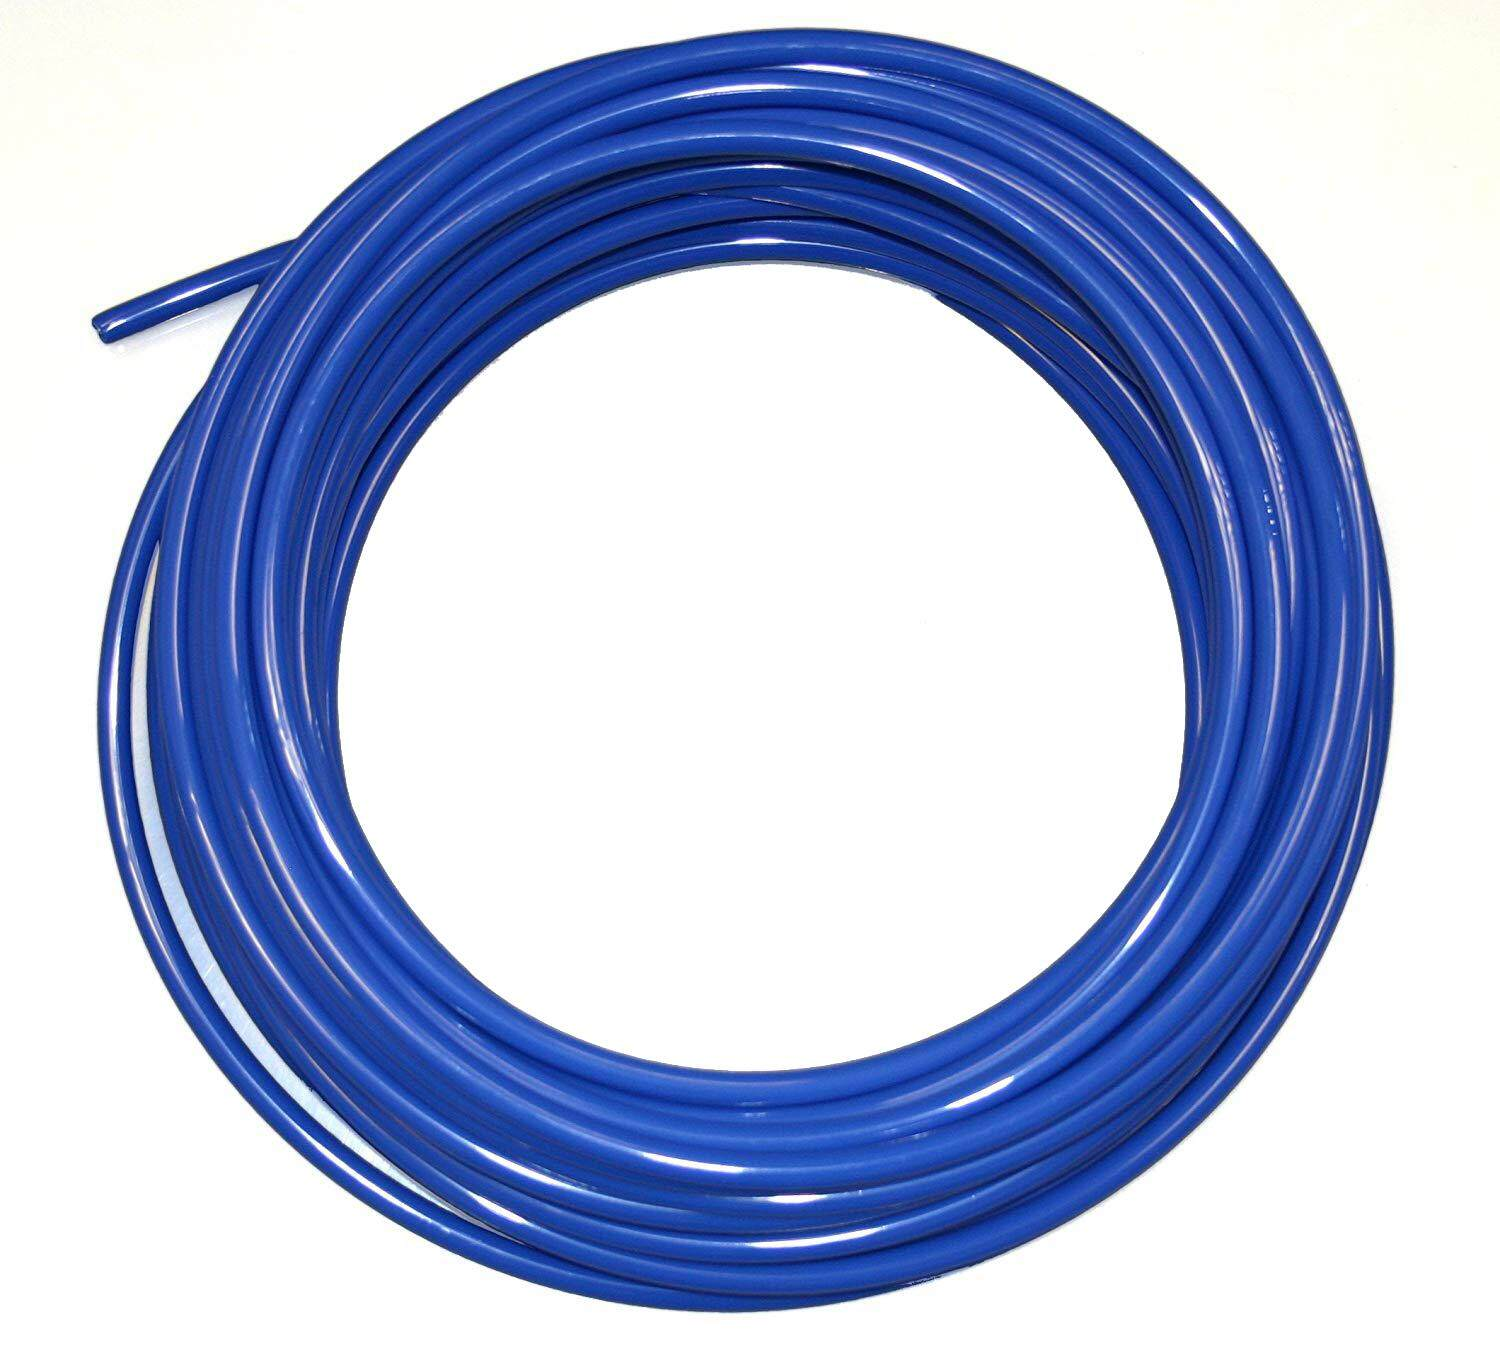 1Meter 8mm x 1.3mm High Flexibility PU Tube Pneumatic Air Hose